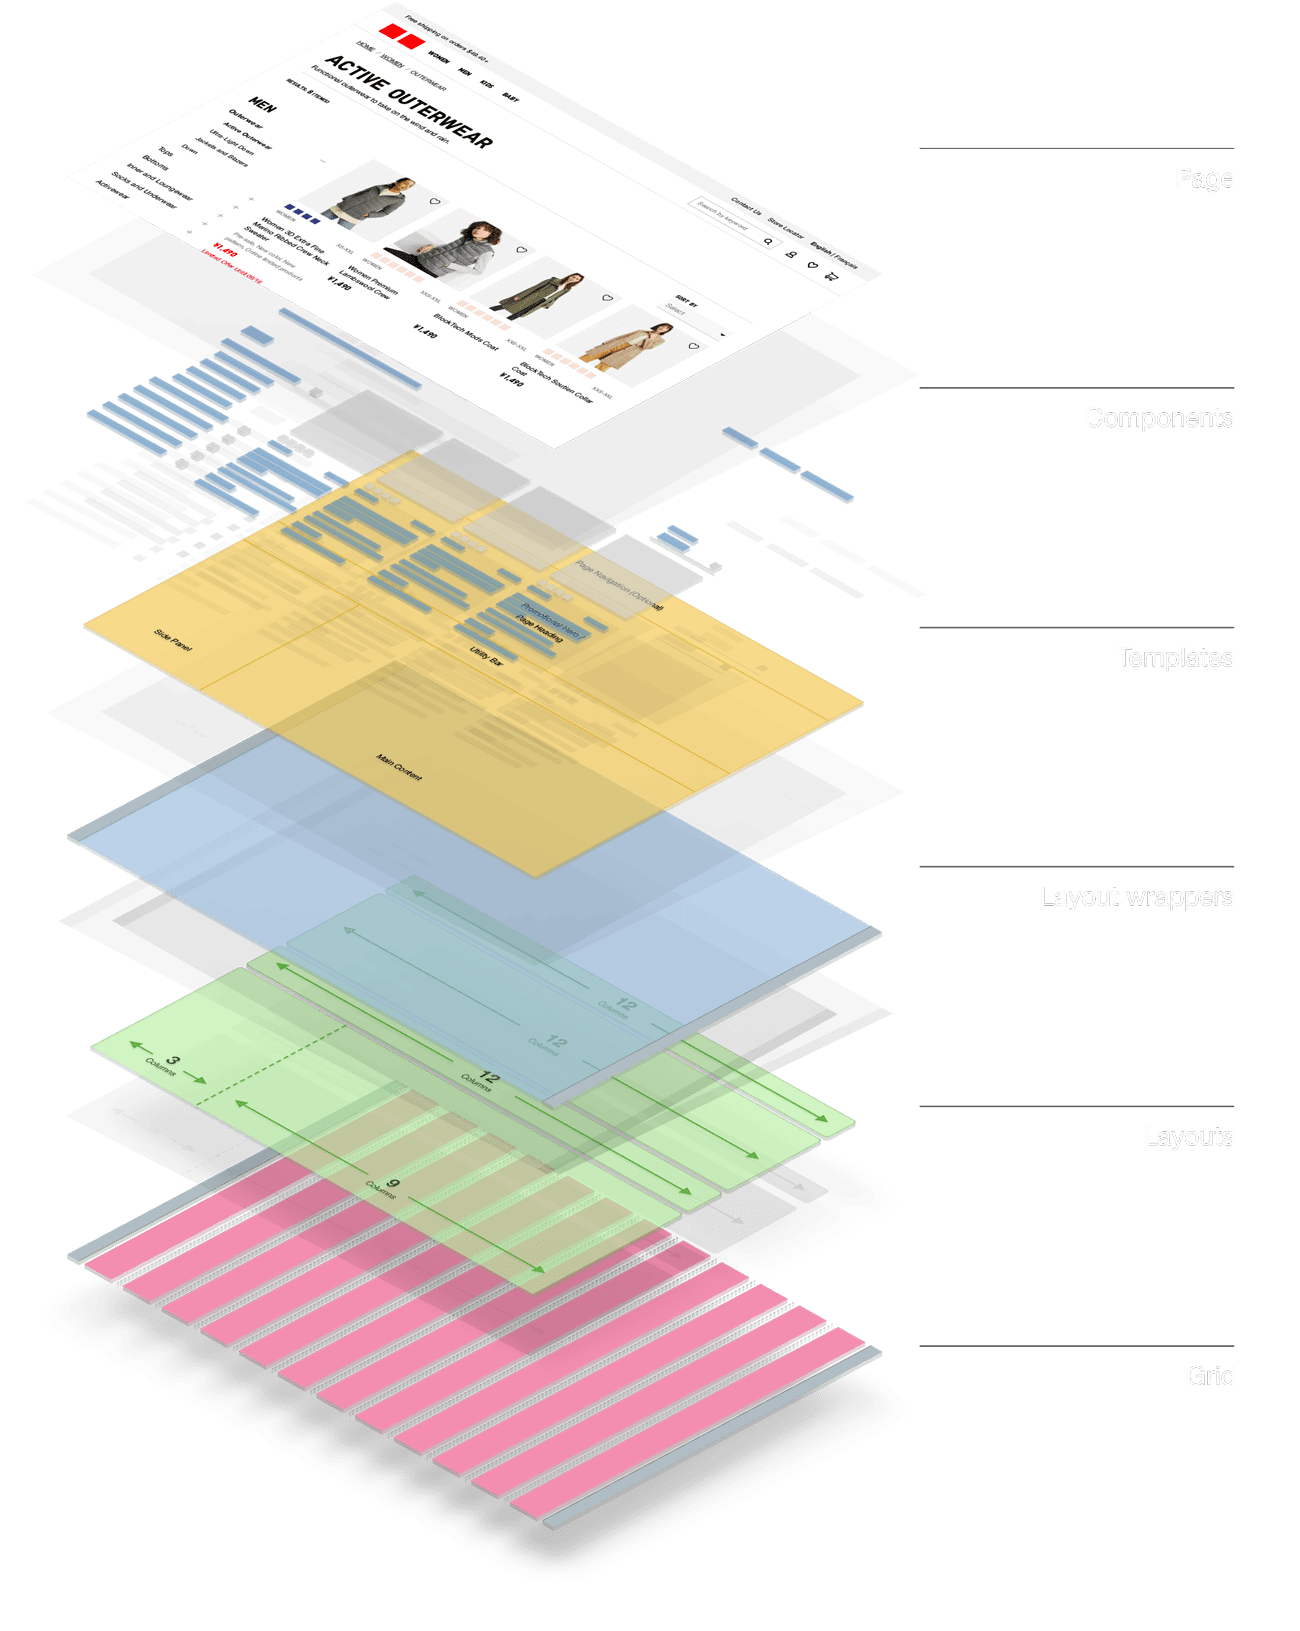 Design Systems Layers image